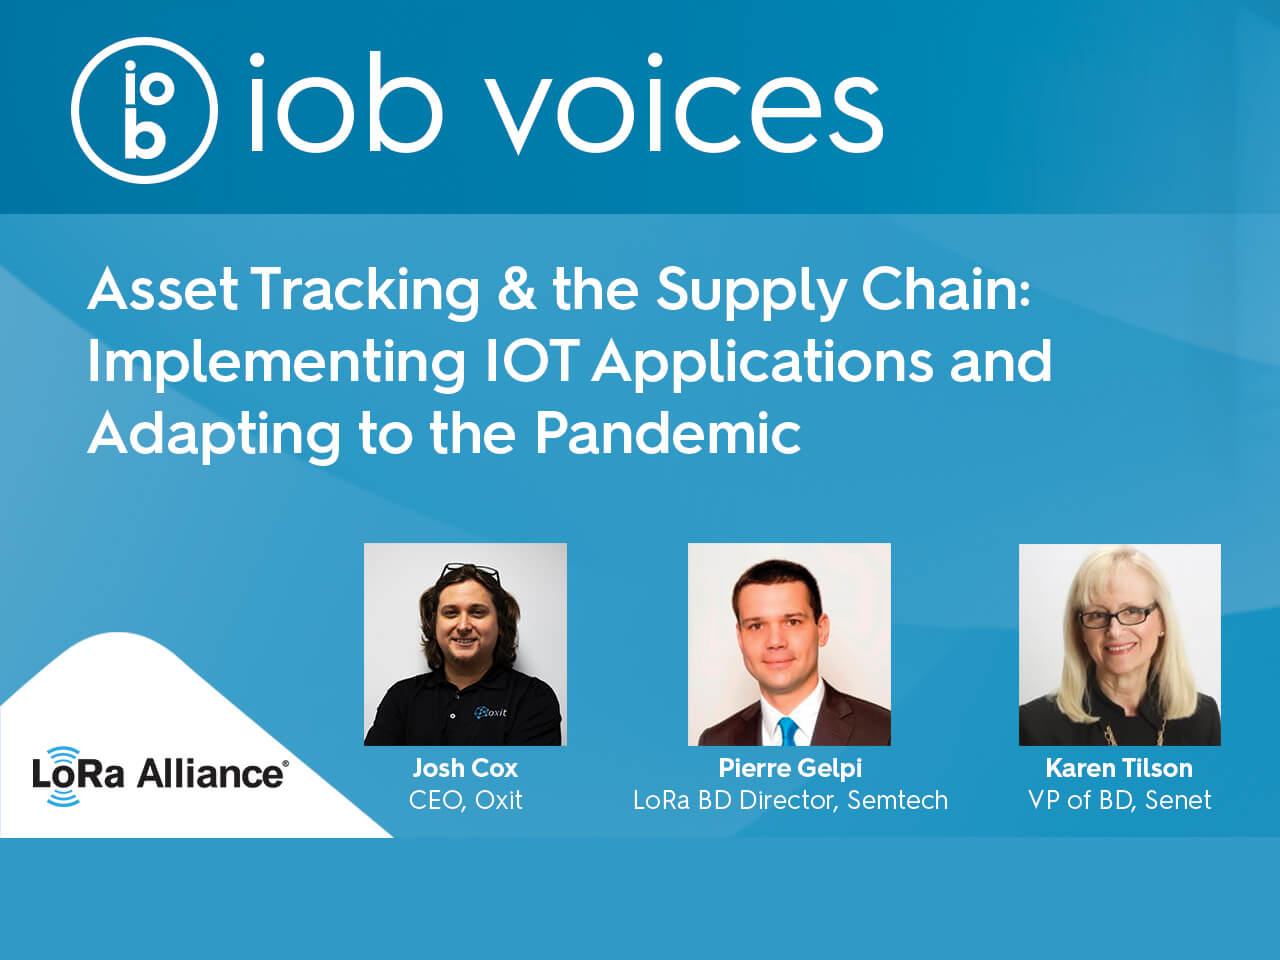 internetofbusiness.com - Josh Johnson - Asset Tracking & the Supply Chain: Implementing IOT Applications and Adapting to the Pandemic